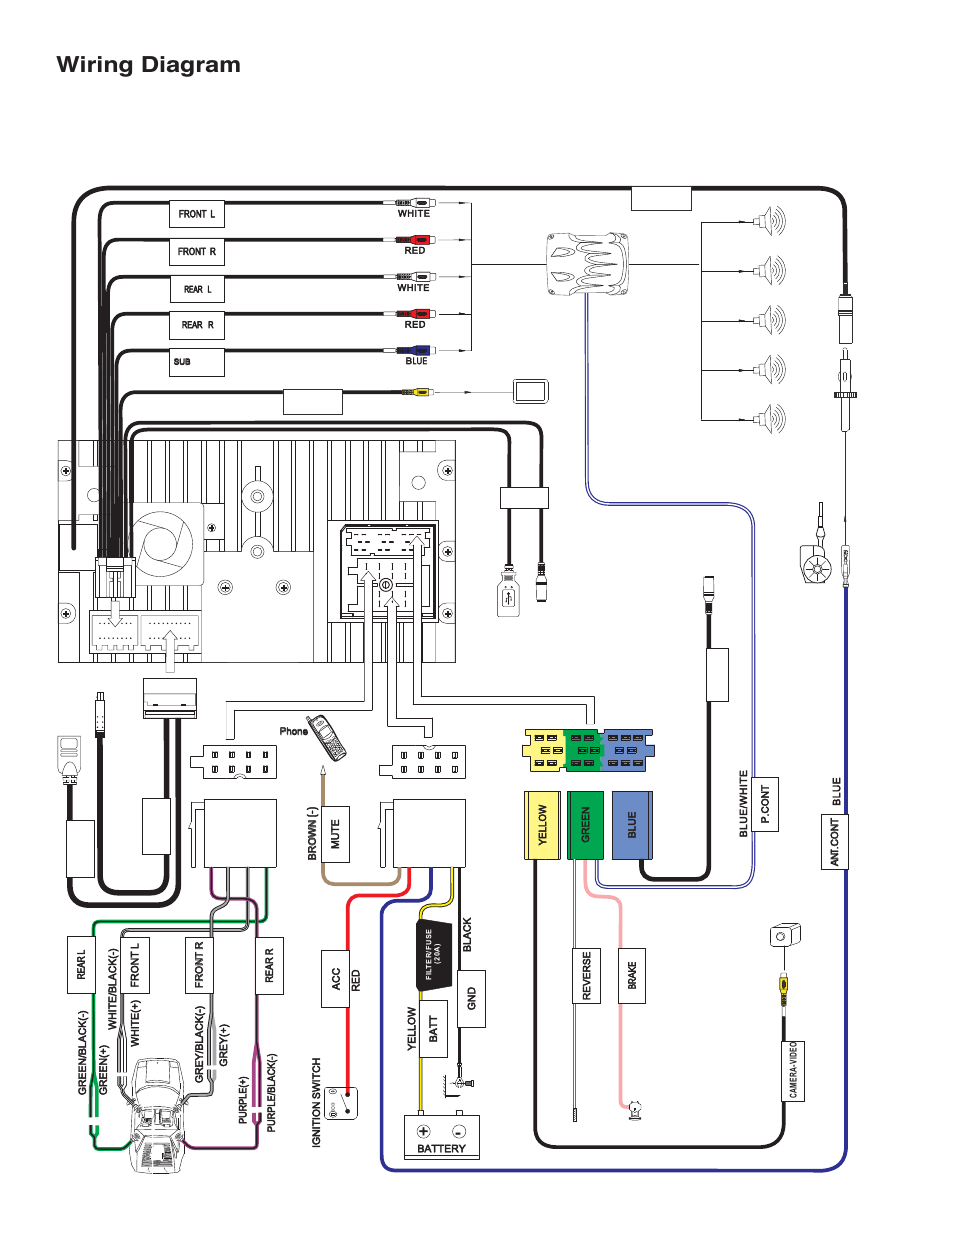 jensen vm9224 page4?resize\\\=665%2C861 viper 5002 alarm wiring diagram viper 5901 wiring diagram, viper viper 500 esp wiring diagram at mr168.co